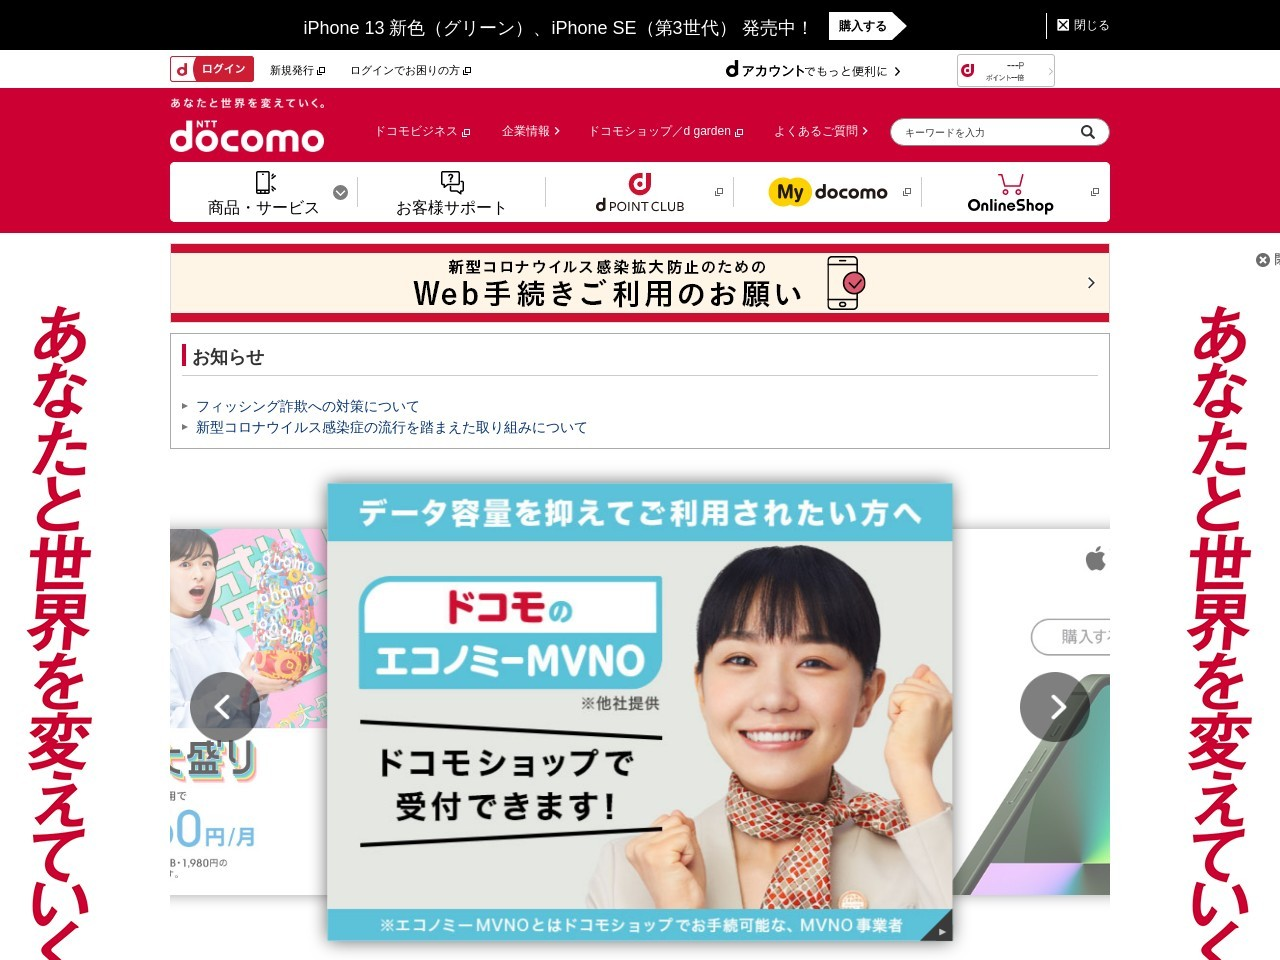 http://www.nttdocomo.co.jp/product/smart_phone/p03e/index.html